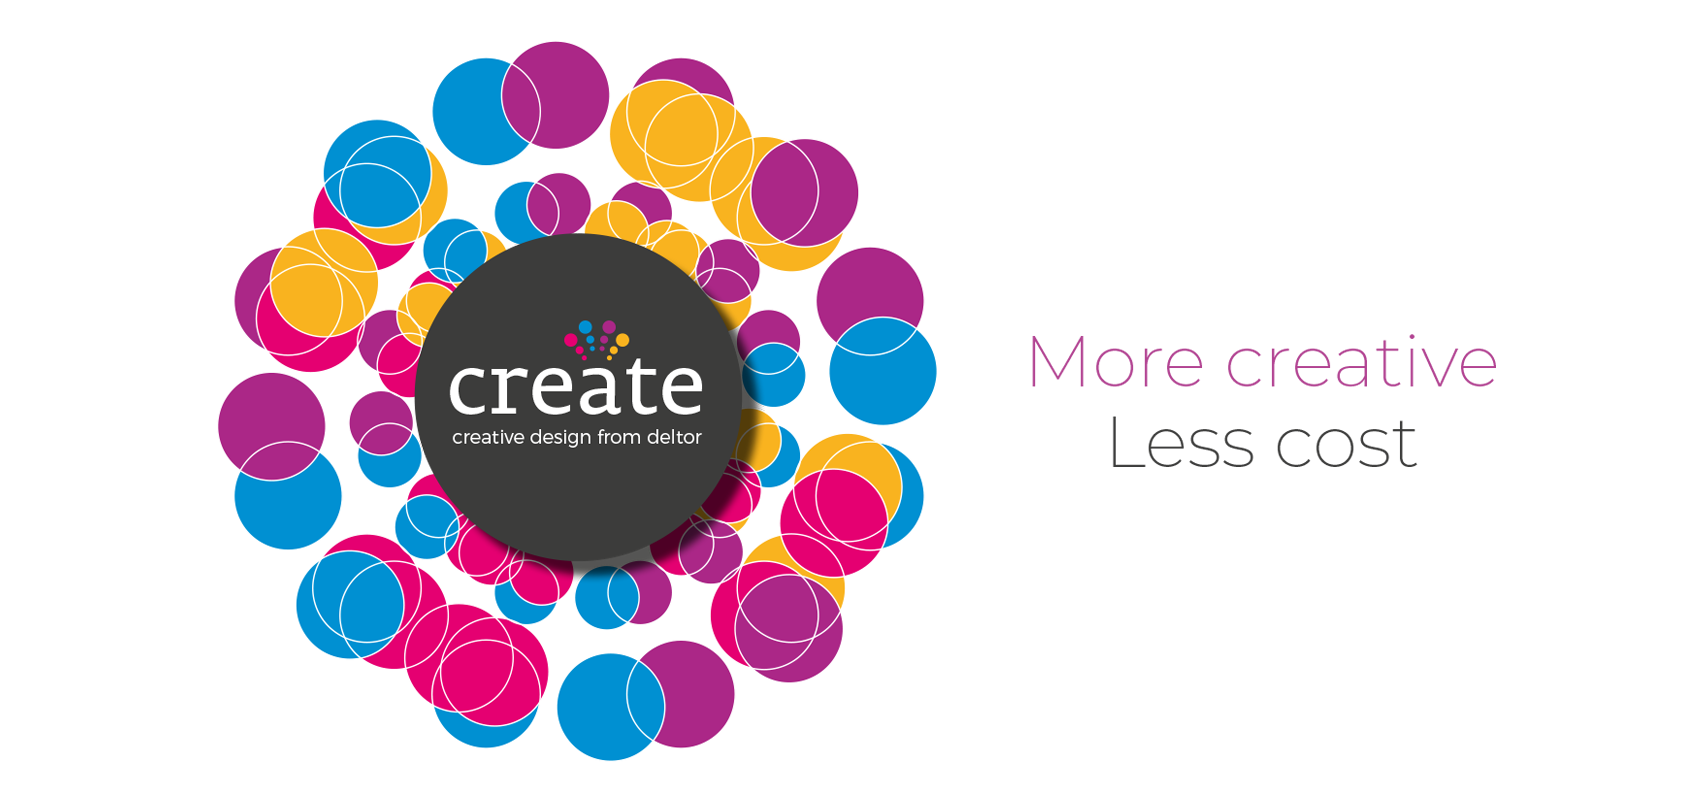 Introducing Create - Deltor's in-house creative design studio